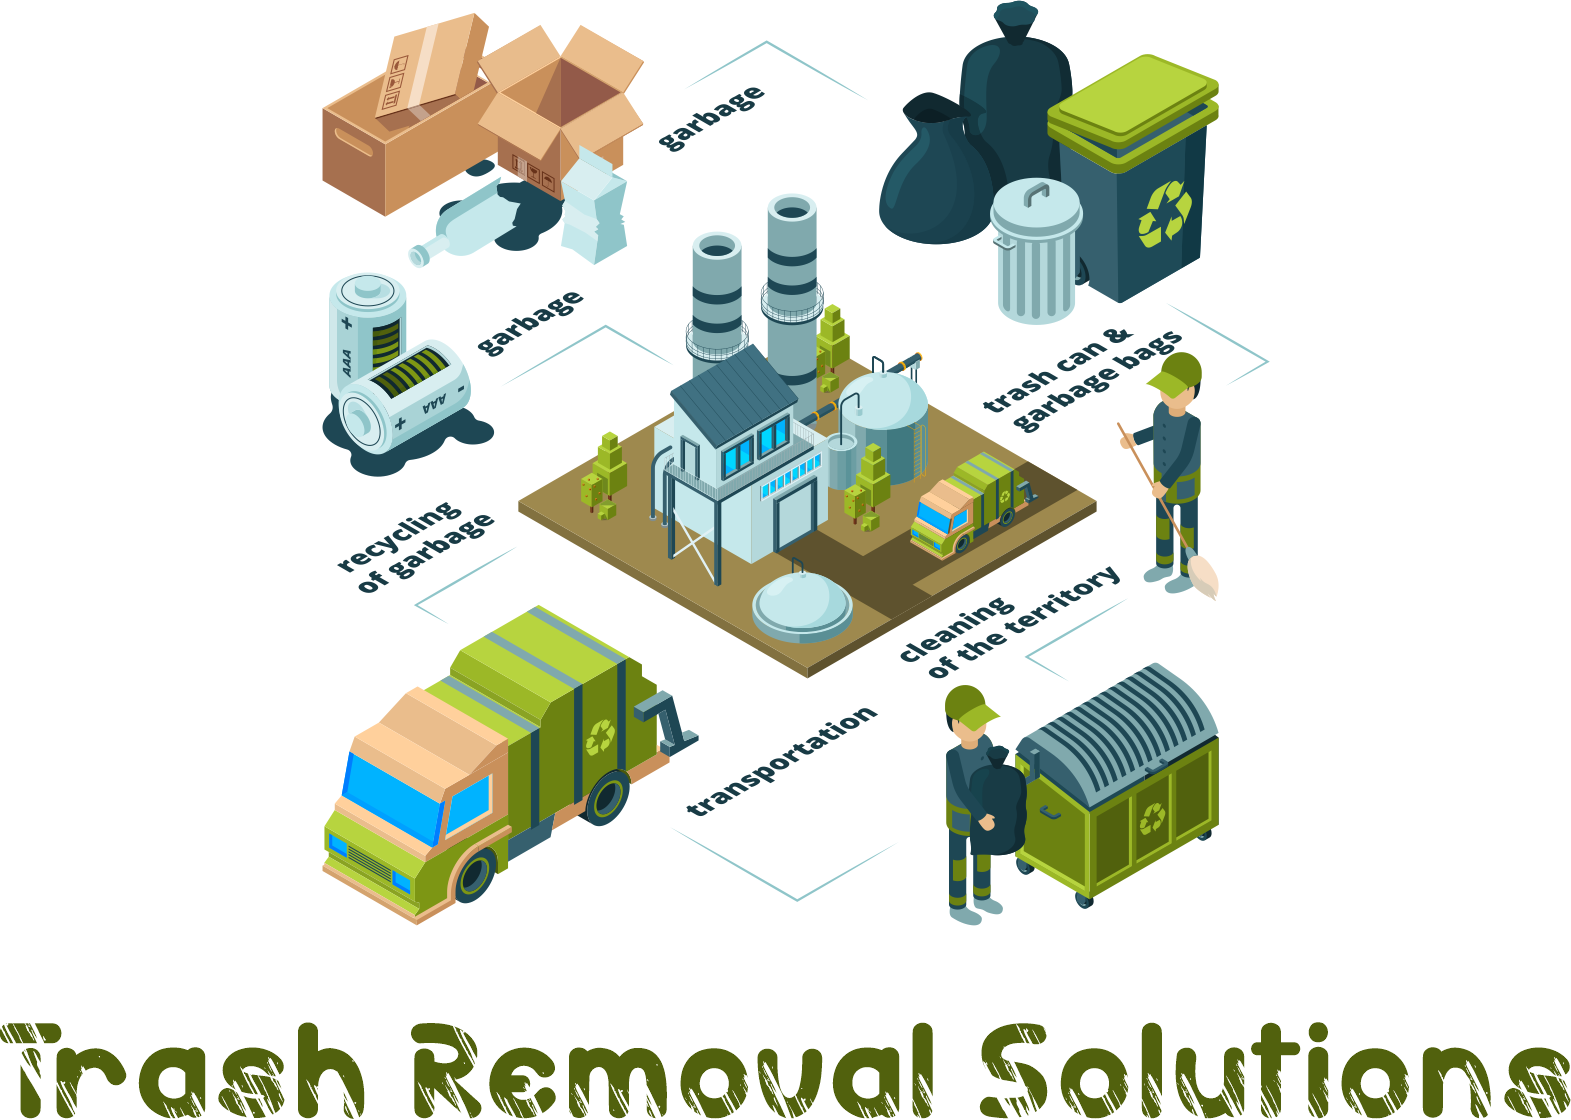 Trash Removal Solutions